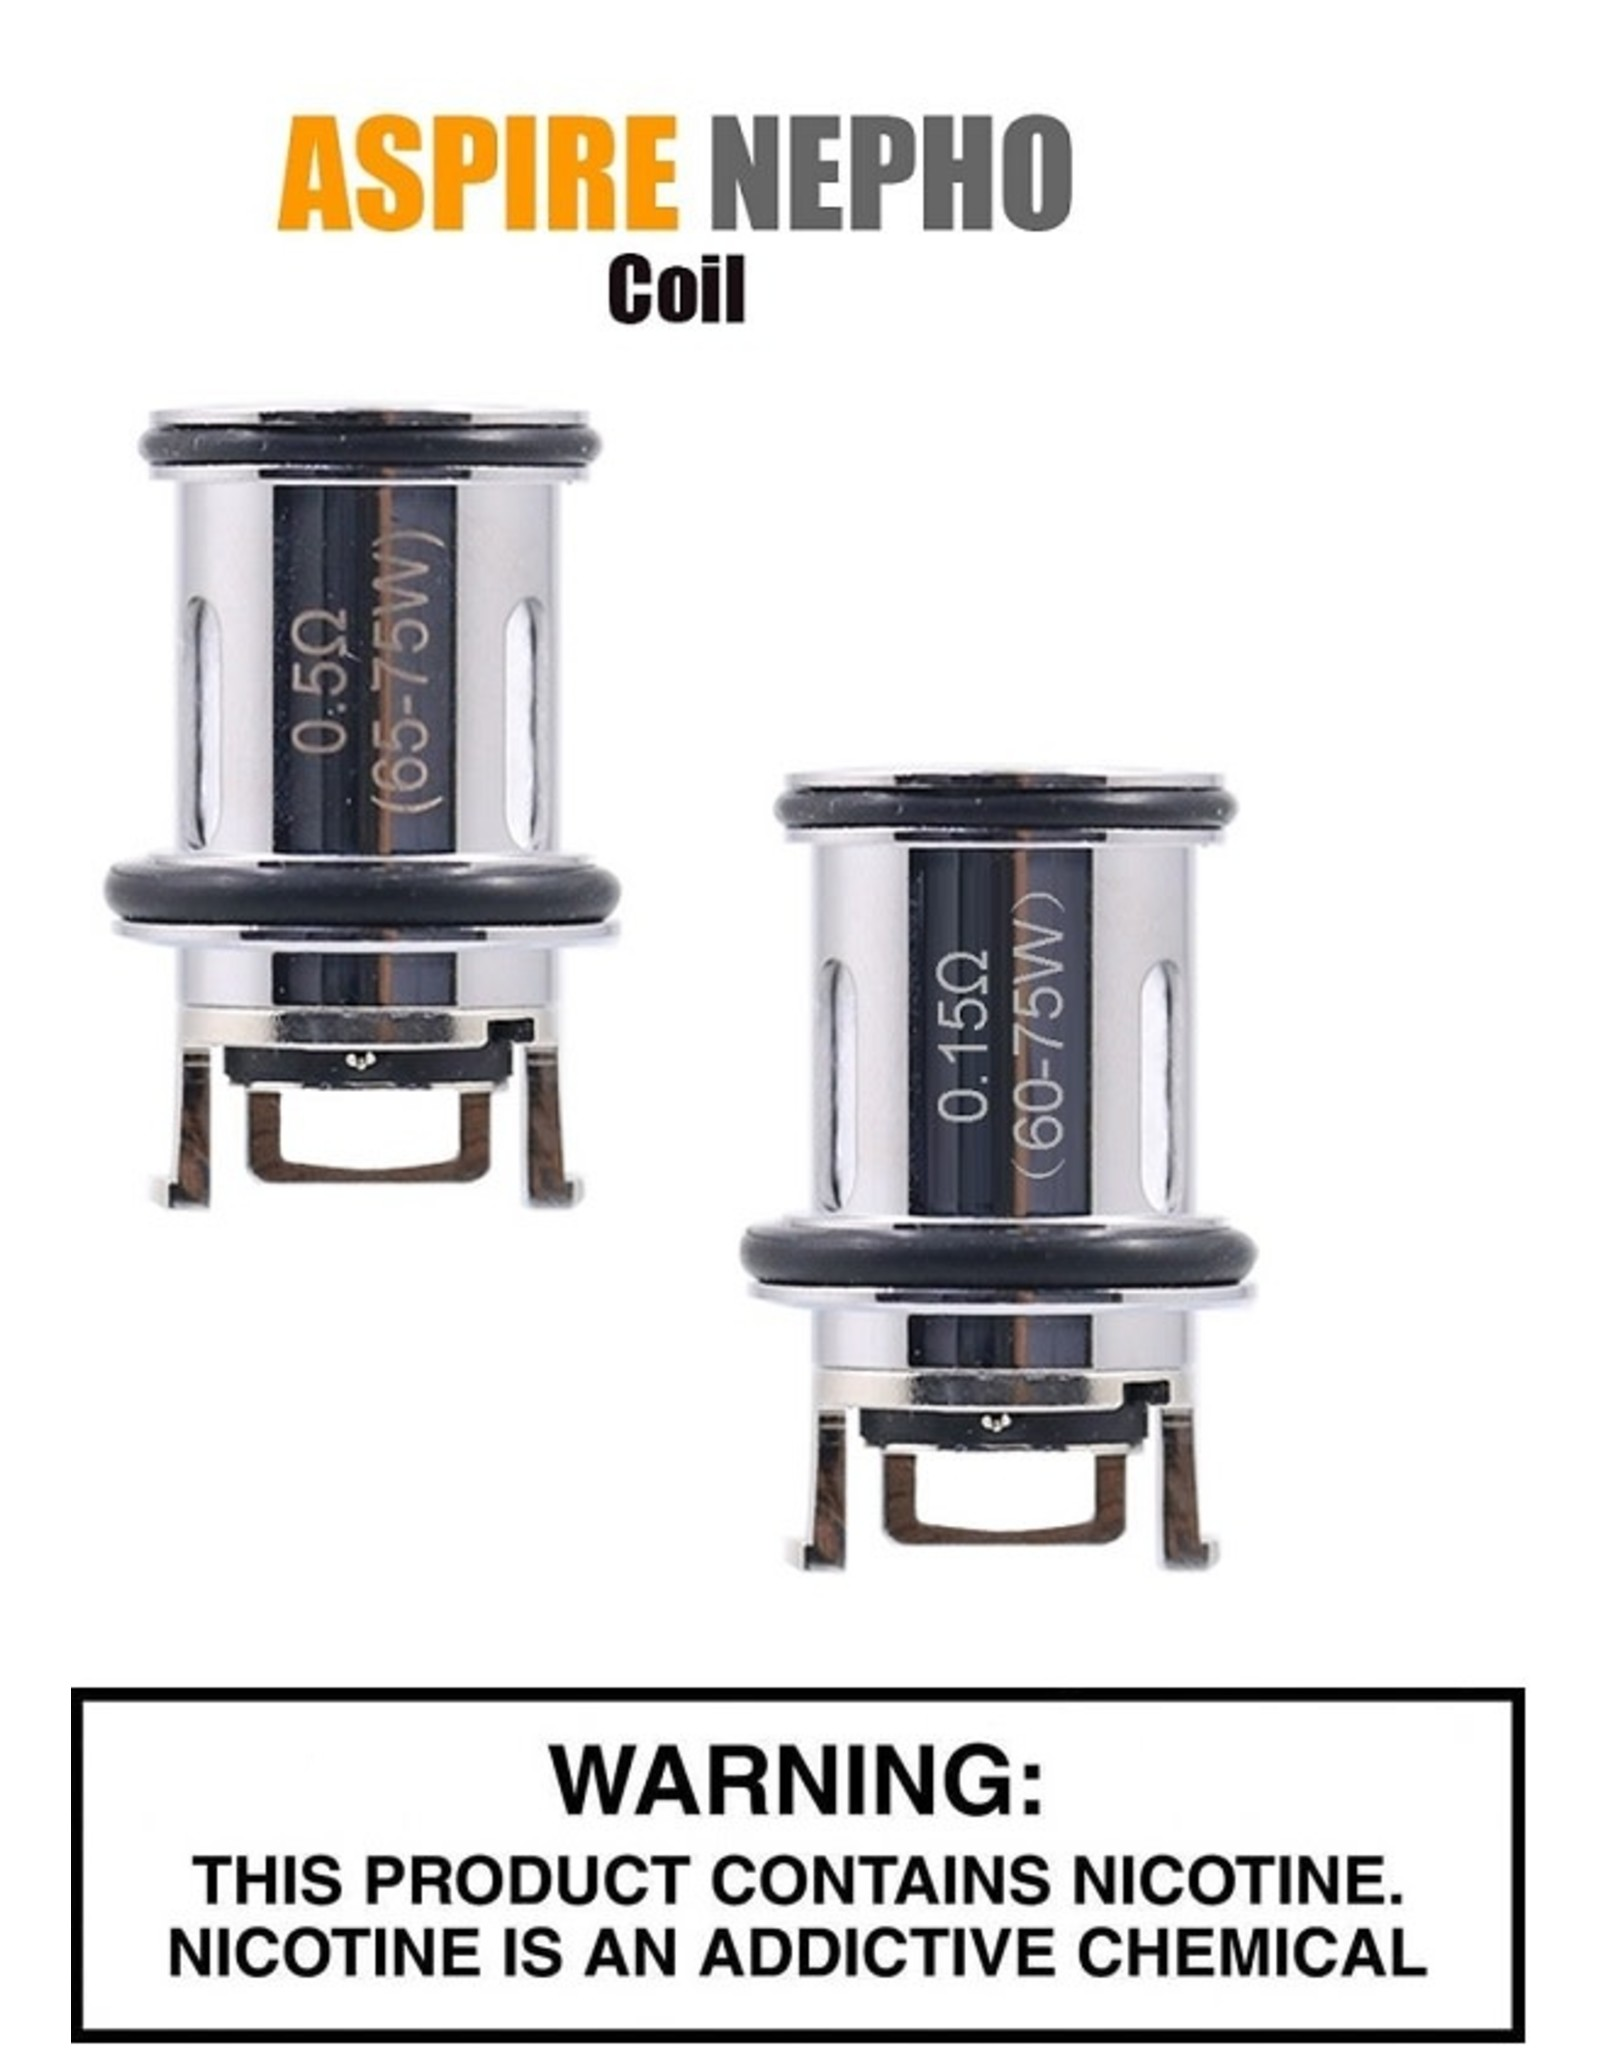 Aspire Aspire Nepho Tank Replacement Coil - Pack of 3